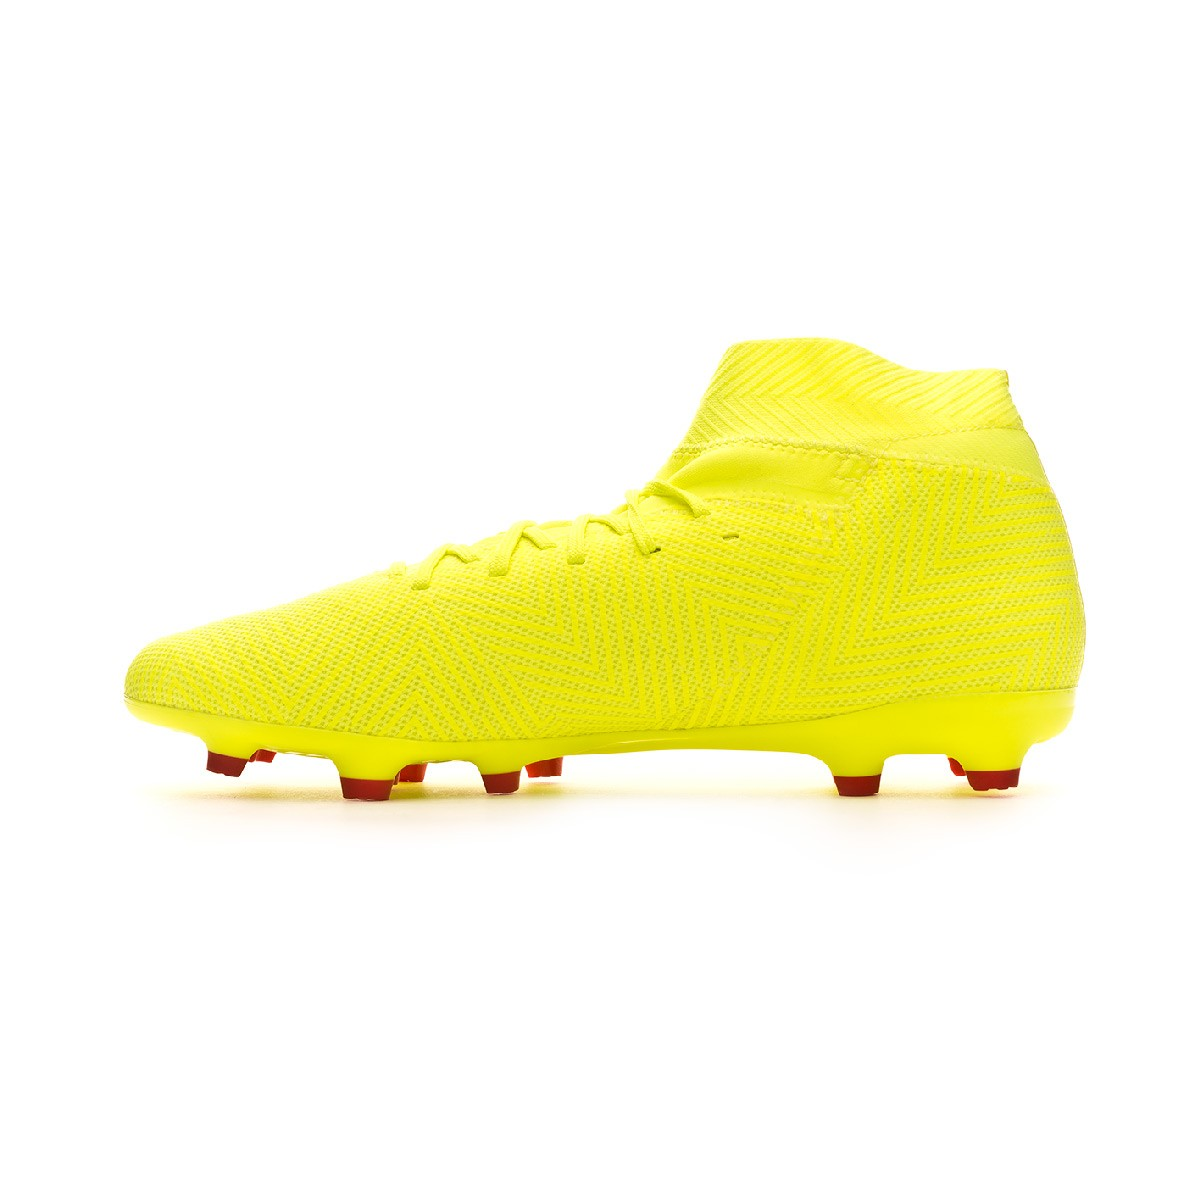 27f4e0eb5c05 Football Boots adidas Nemeziz 18.3 FG Solar yellow-Football blue-Active red  - Football store Fútbol Emotion